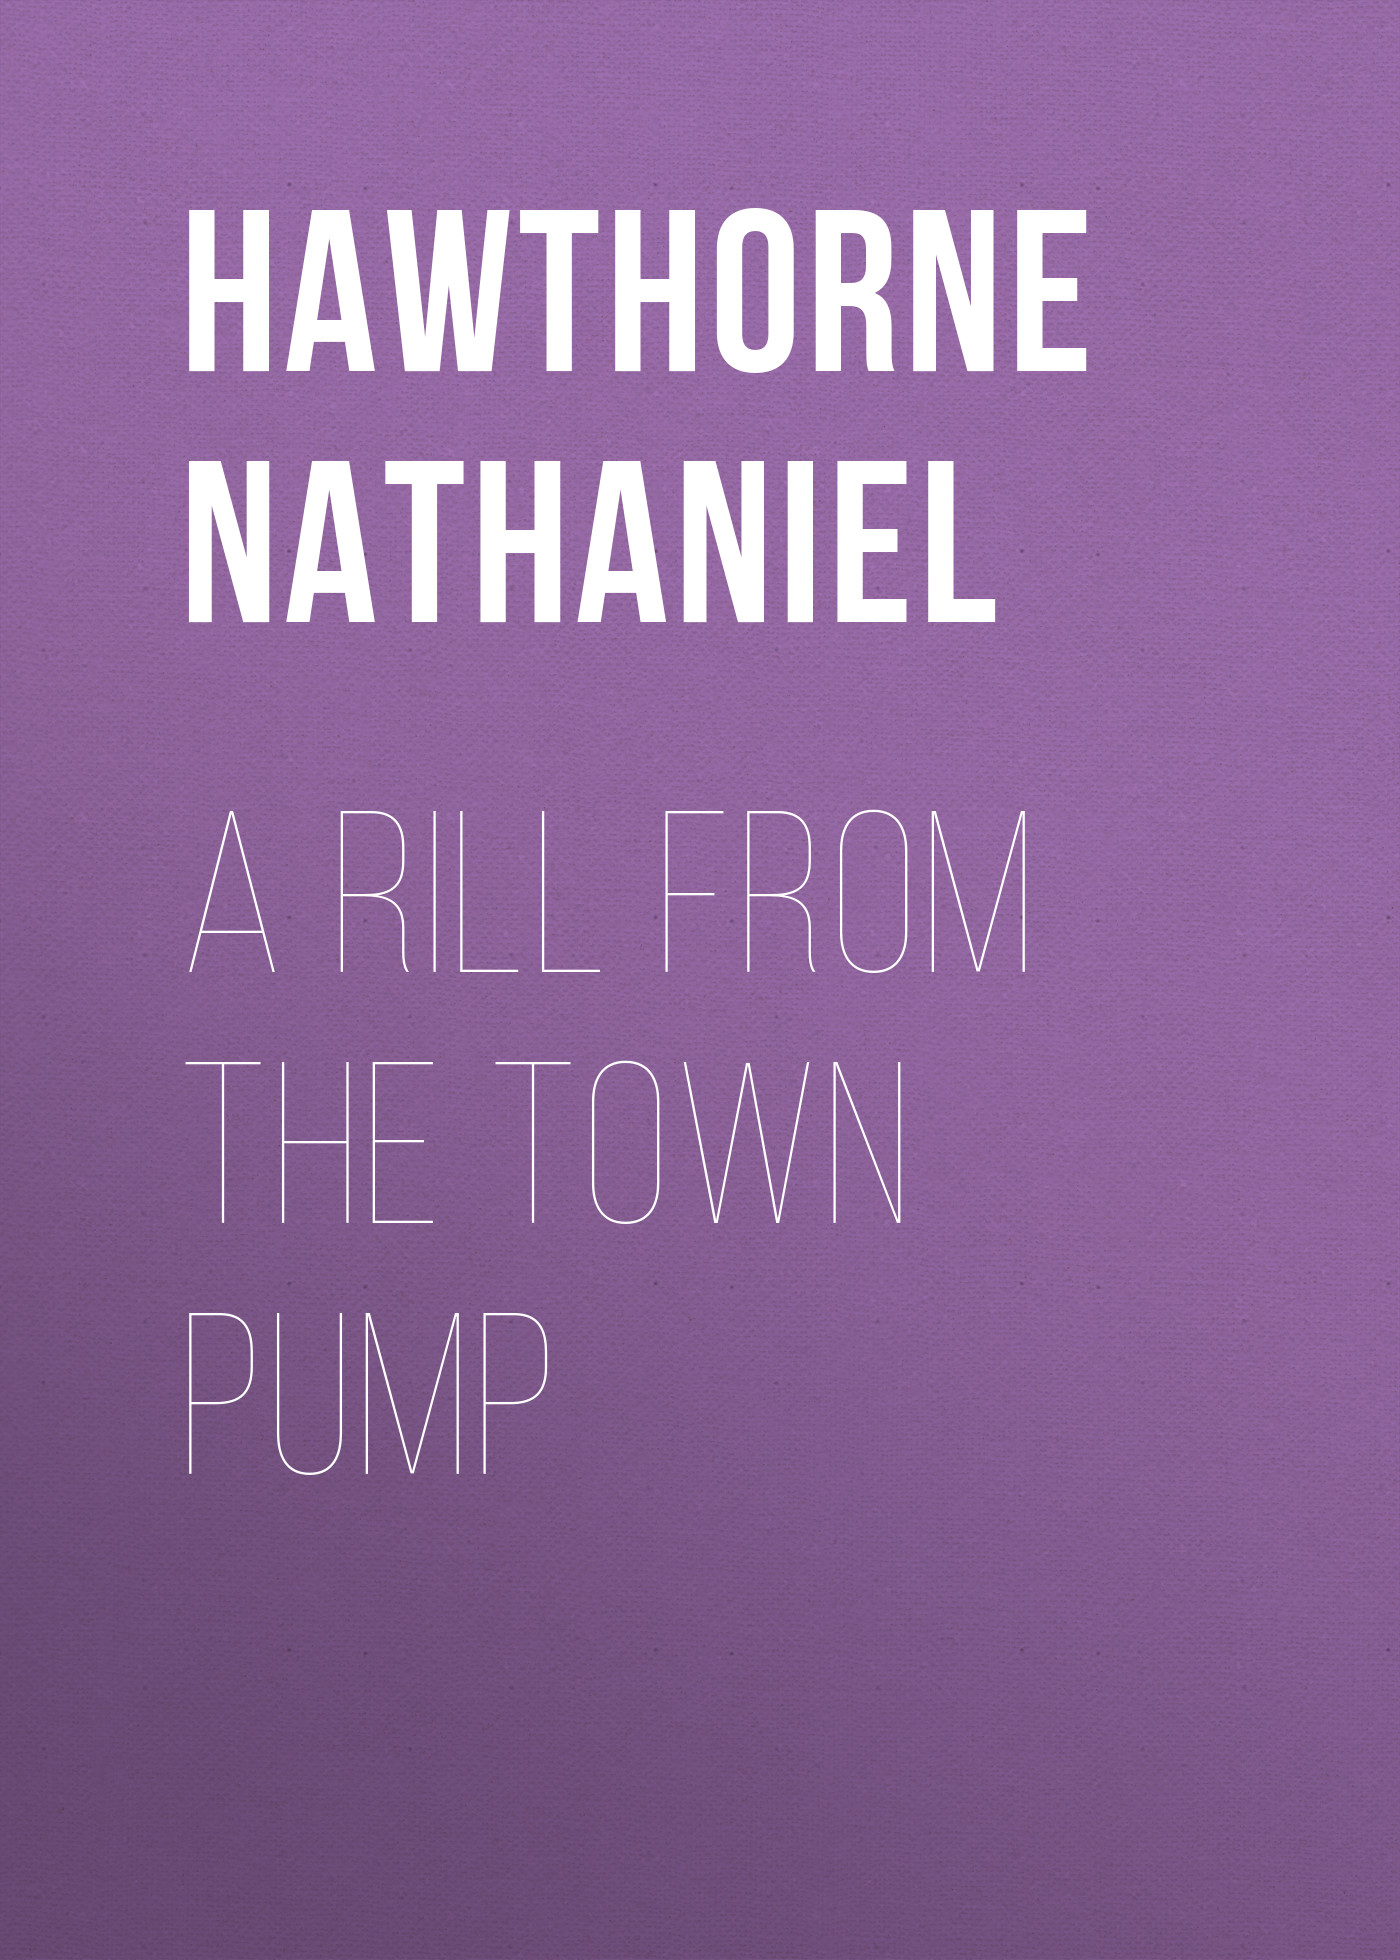 Hawthorne Nathaniel A Rill from the Town Pump